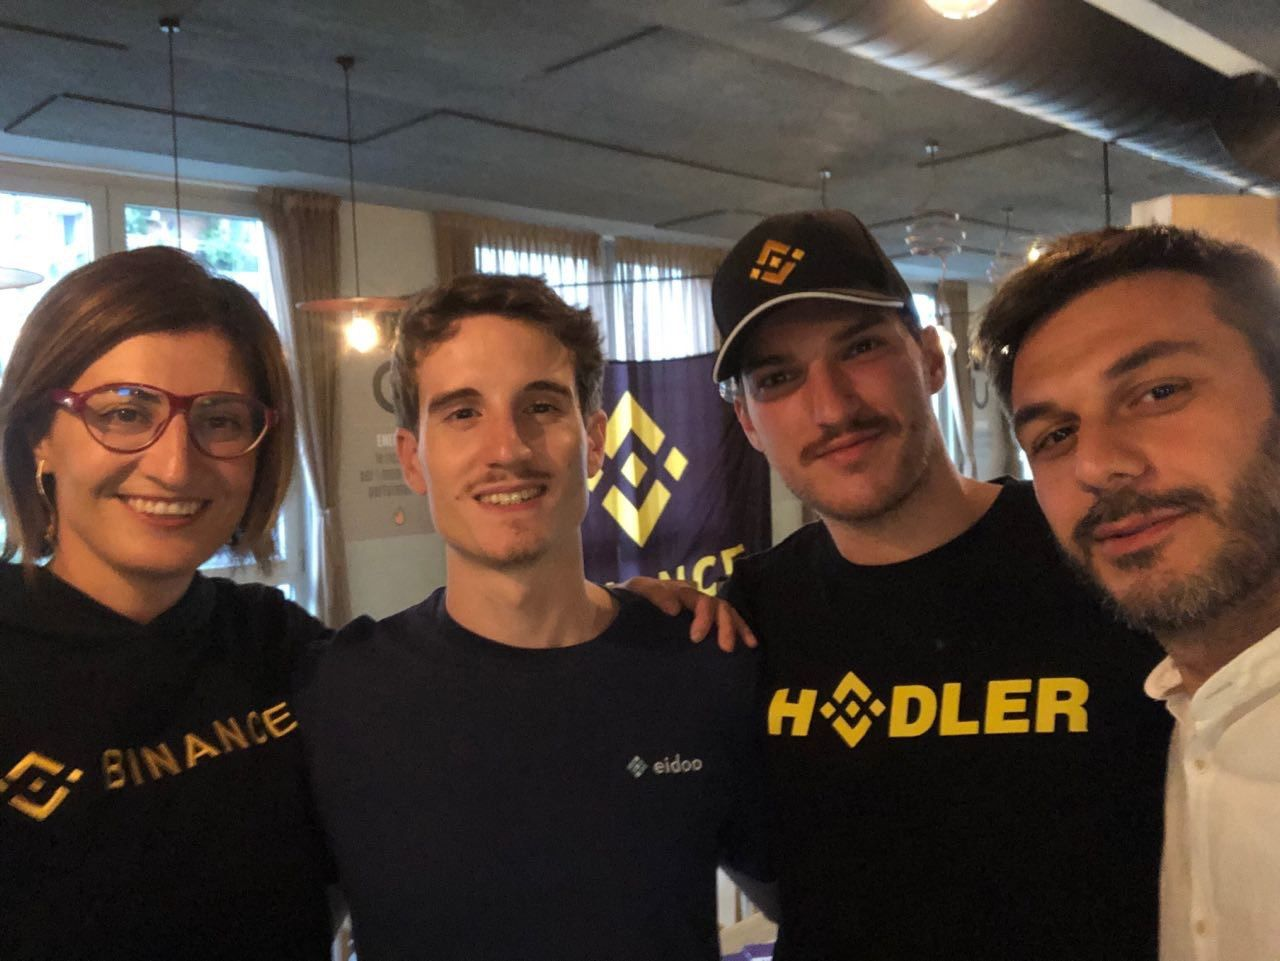 binance eidoo meetup milan-